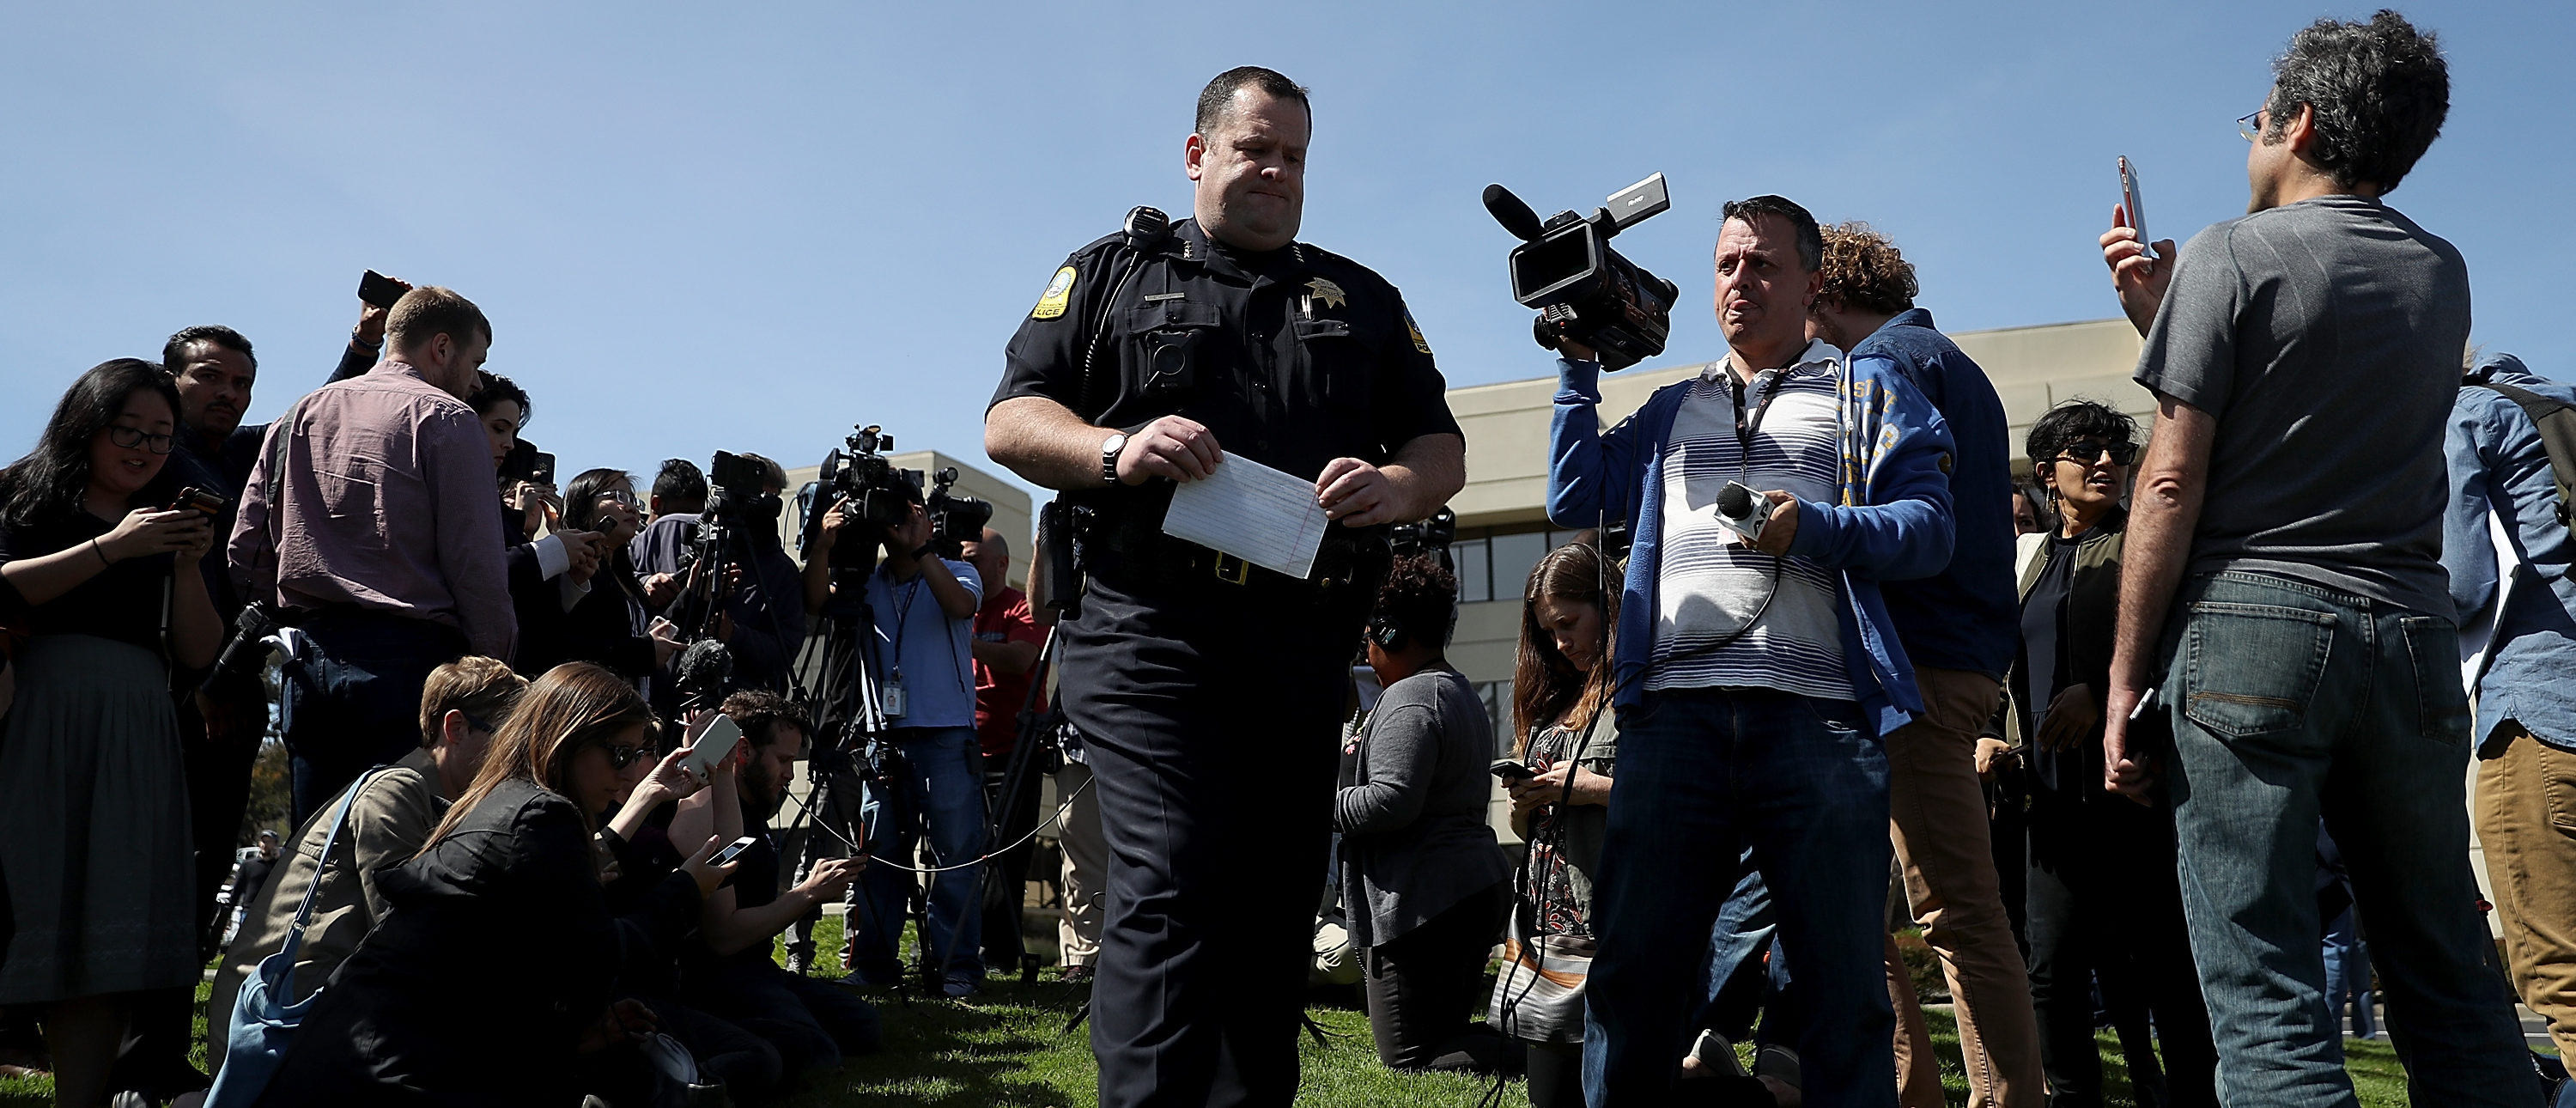 SAN BRUNO, CA - APRIL 03: San Bruno police chief Ed Barberini speaks to members of the media outside of the YouTube headquarters on April 3, 2018 in San Bruno, California. Police are investigating an active shooter incident at YouTube headquarters that has left at least one person dead and several wounded. (Photo by Justin Sullivan/Getty Images)